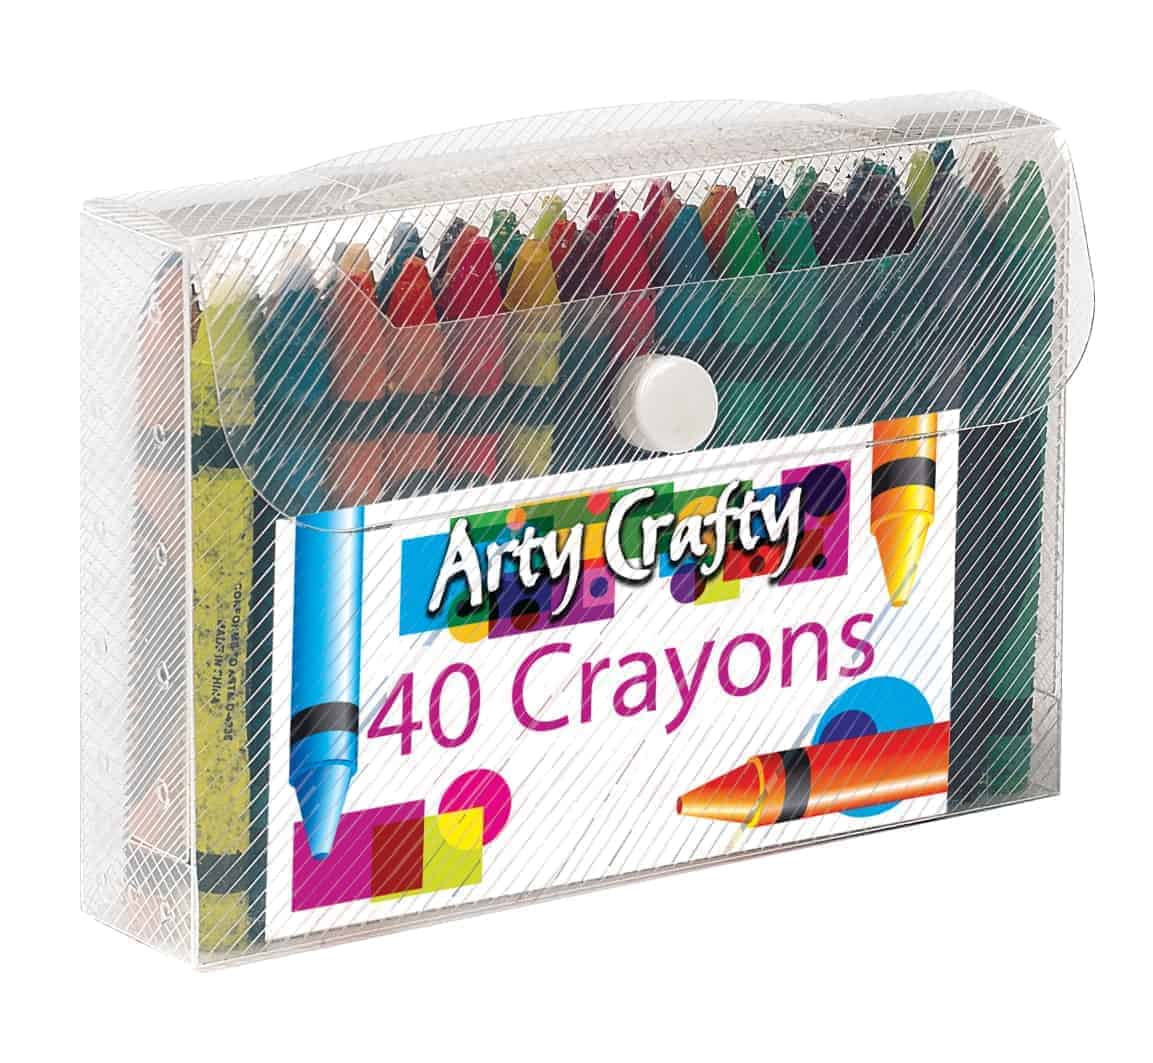 Arty Crafty 40pk Crayons